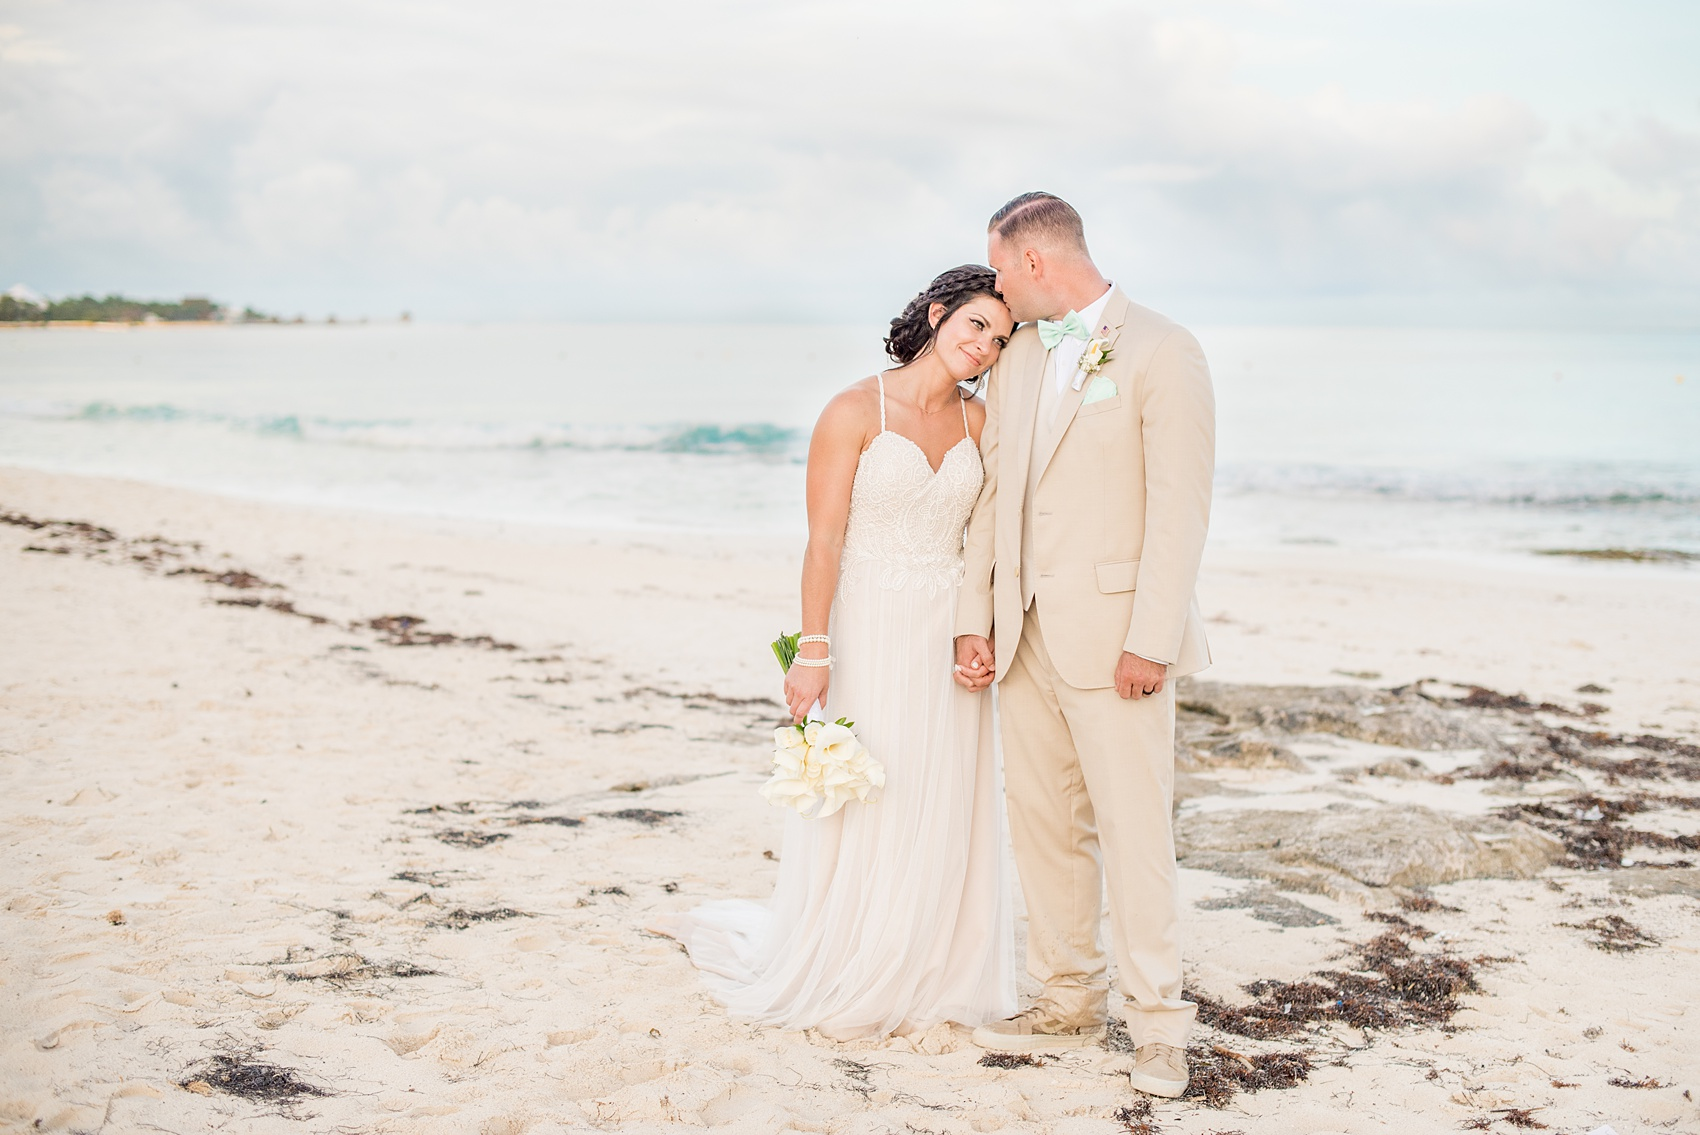 Mikkel Paige Photography photos from a wedding at Grand Paraiso, Mexico, Playa del Carmen Iberostar resort. Picture of the bride and groom on the sand of the beach.